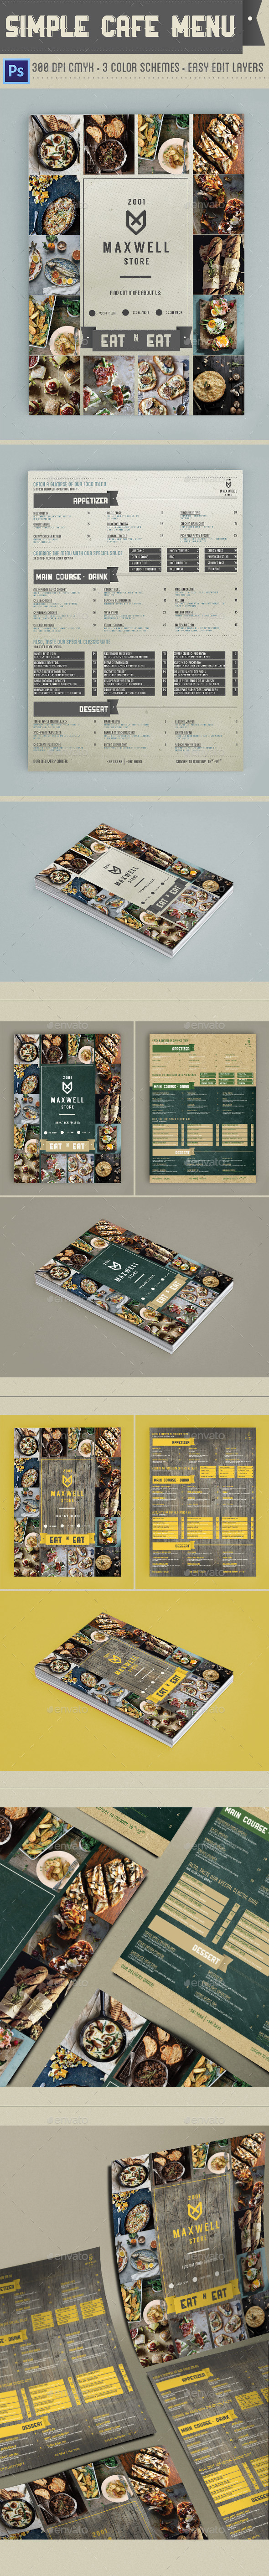 Simple Cafe Menu - Food Menus Print Templates